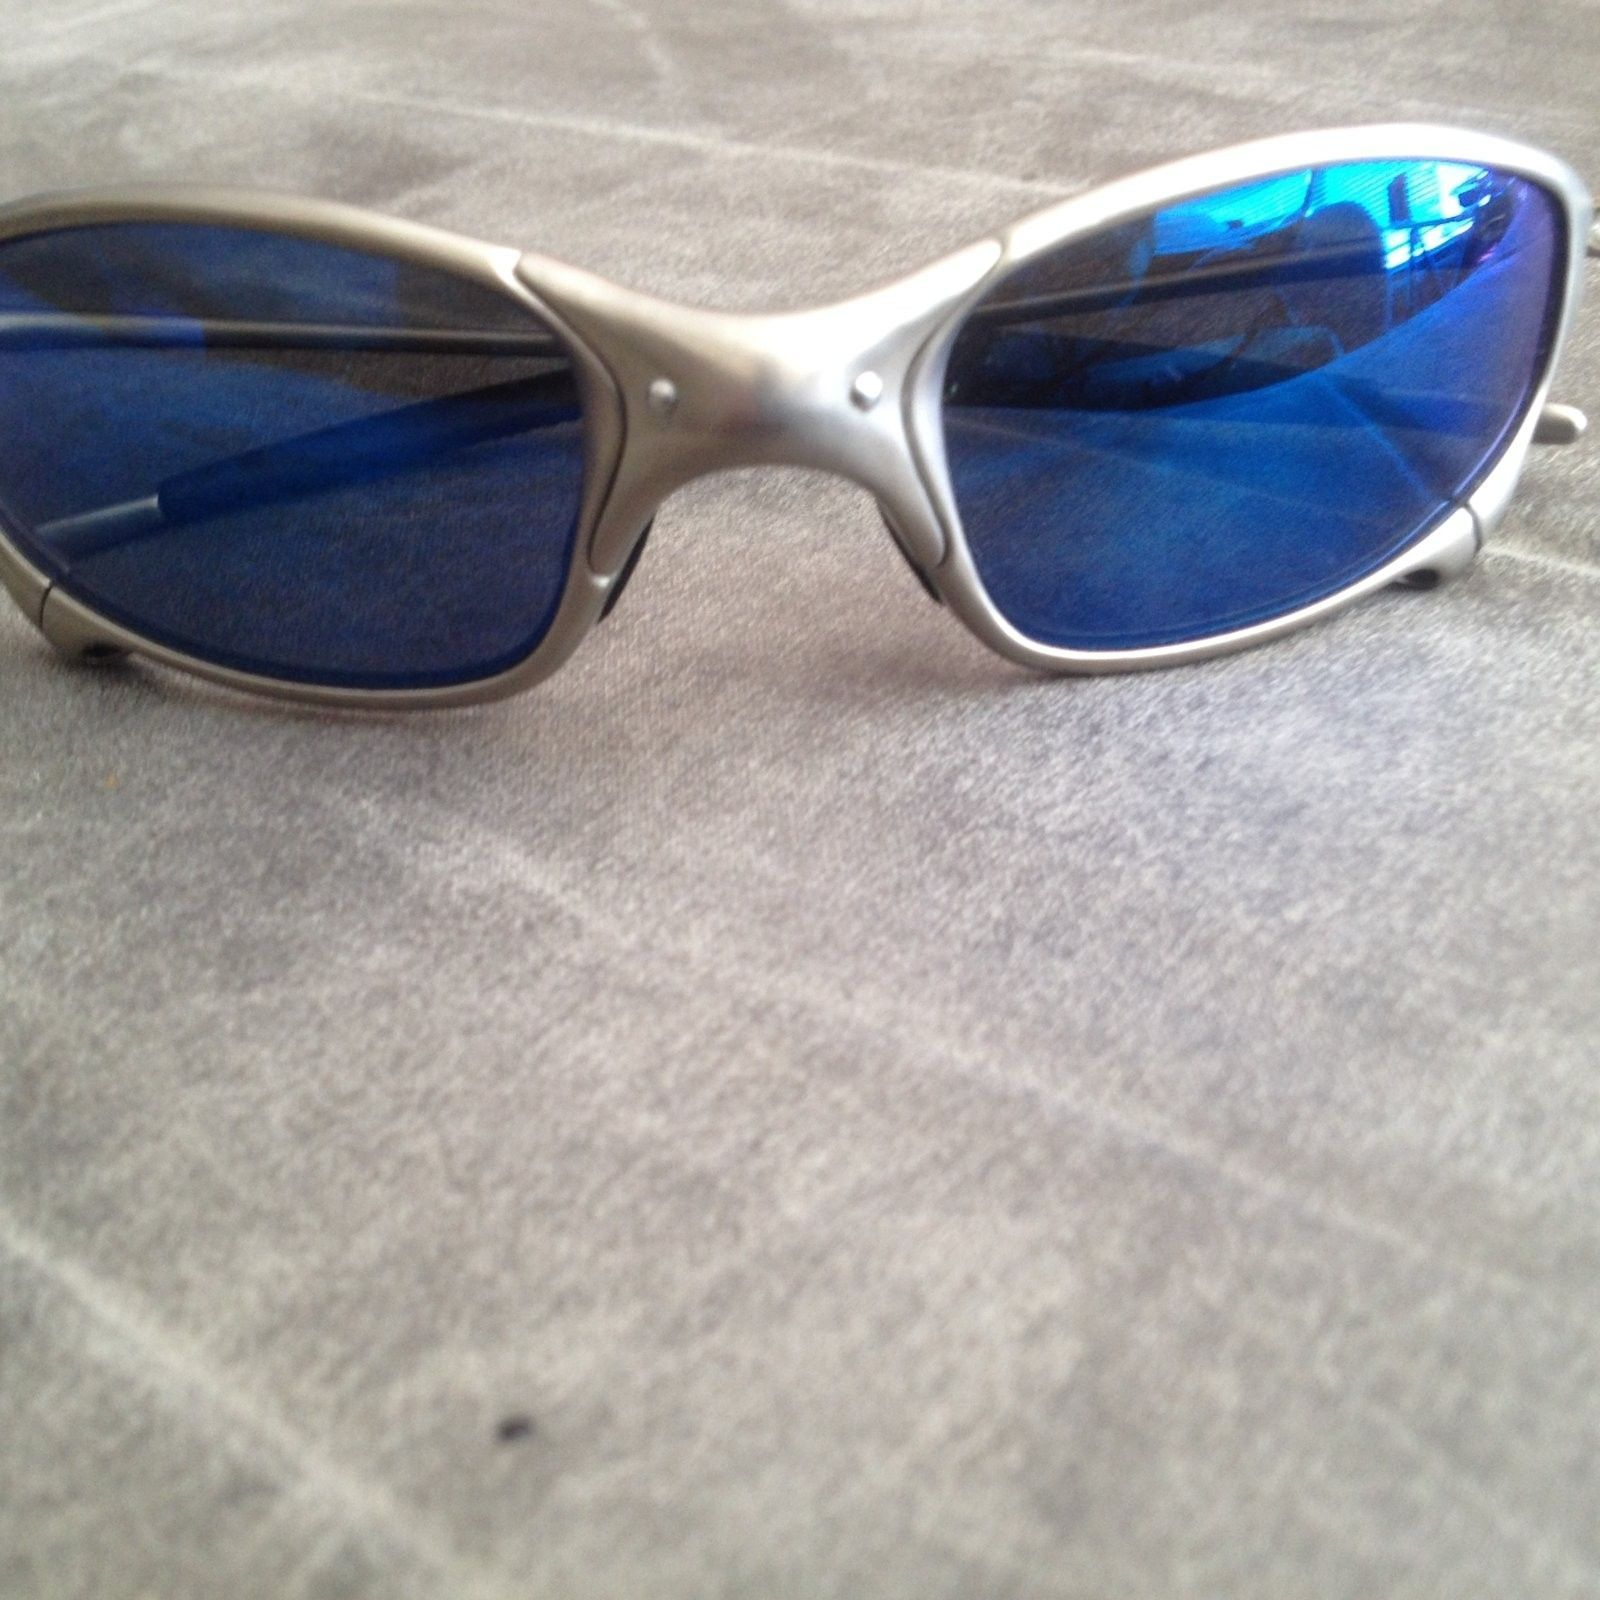 Need help identifying these oakleys - image.jpeg